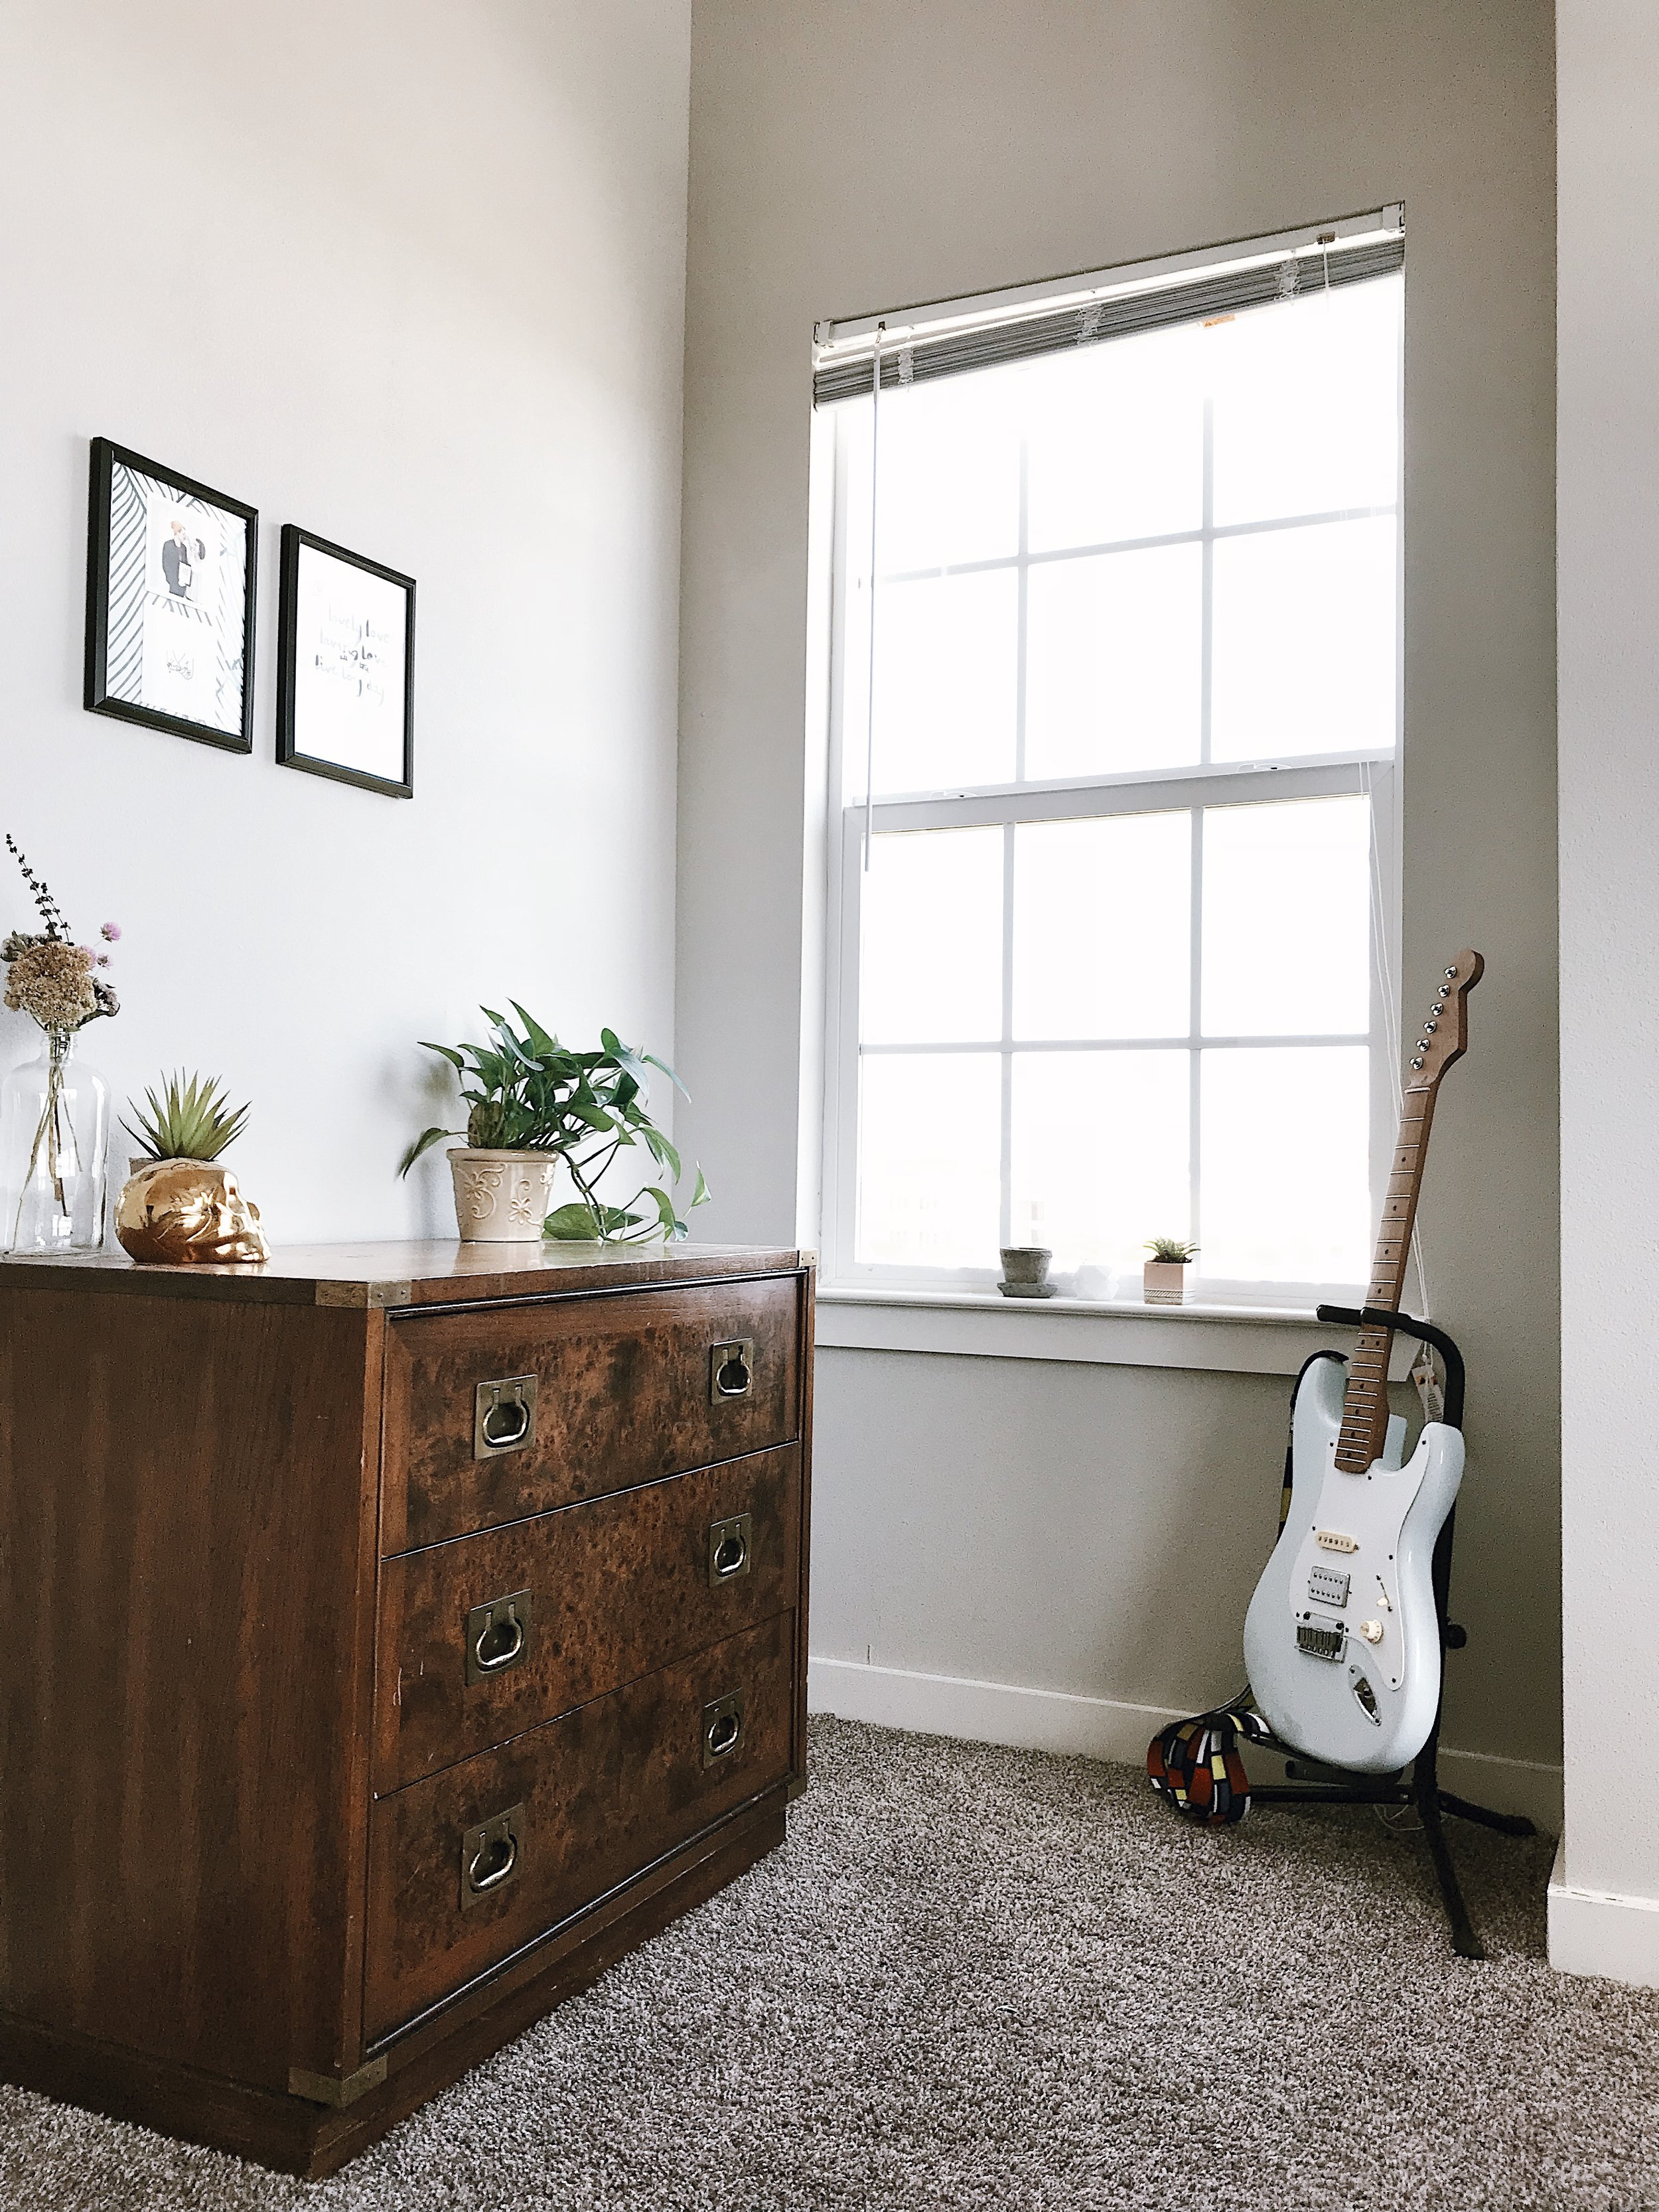 A MINIMAL BEDROOM TOUR - This Wild Home